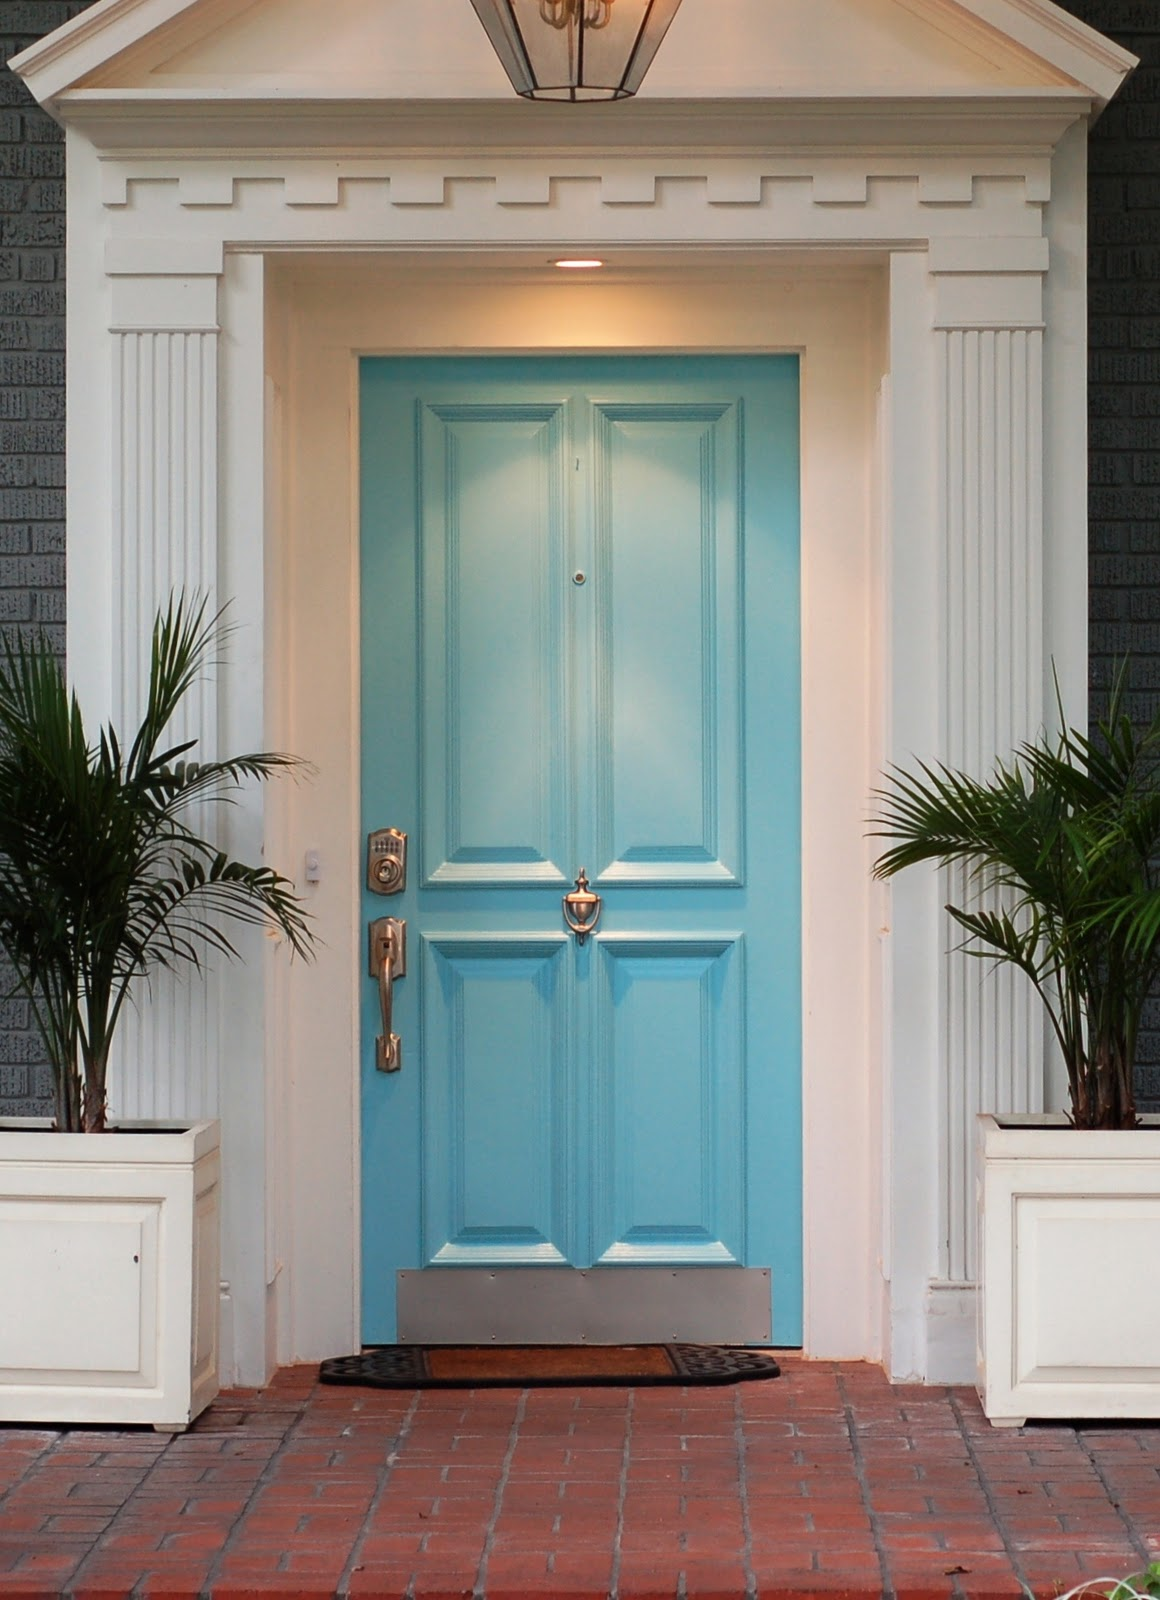 North dallas real estate front door colors to help sell Best front door colors for brick house